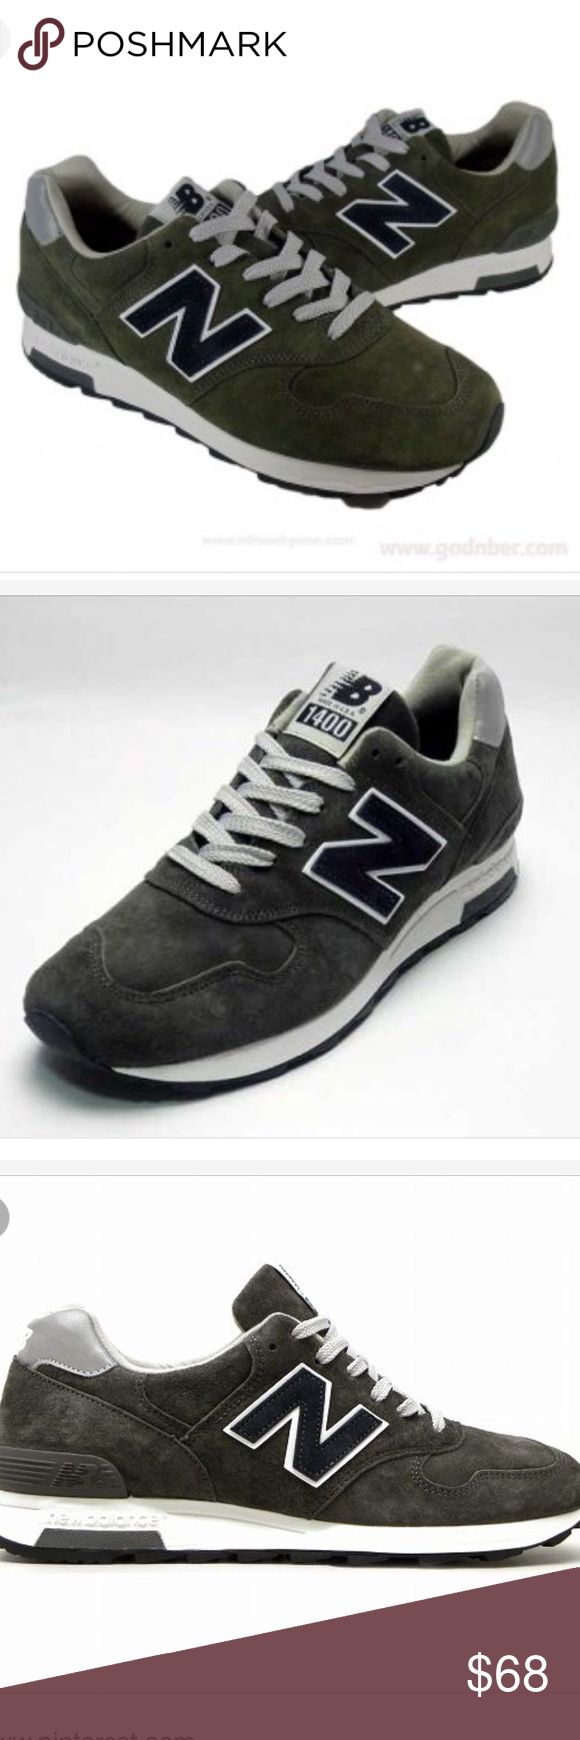 Collaboration New Balance for J Crew Sneakers New Balance M1400 DM JCrew . Each pair is crafted I the U.S from premium American made suede. Suede upper, removable footbed inserts. Rubber sole with New Balace trade mark tread pattern. Military gray New Balance Shoes Sneakers